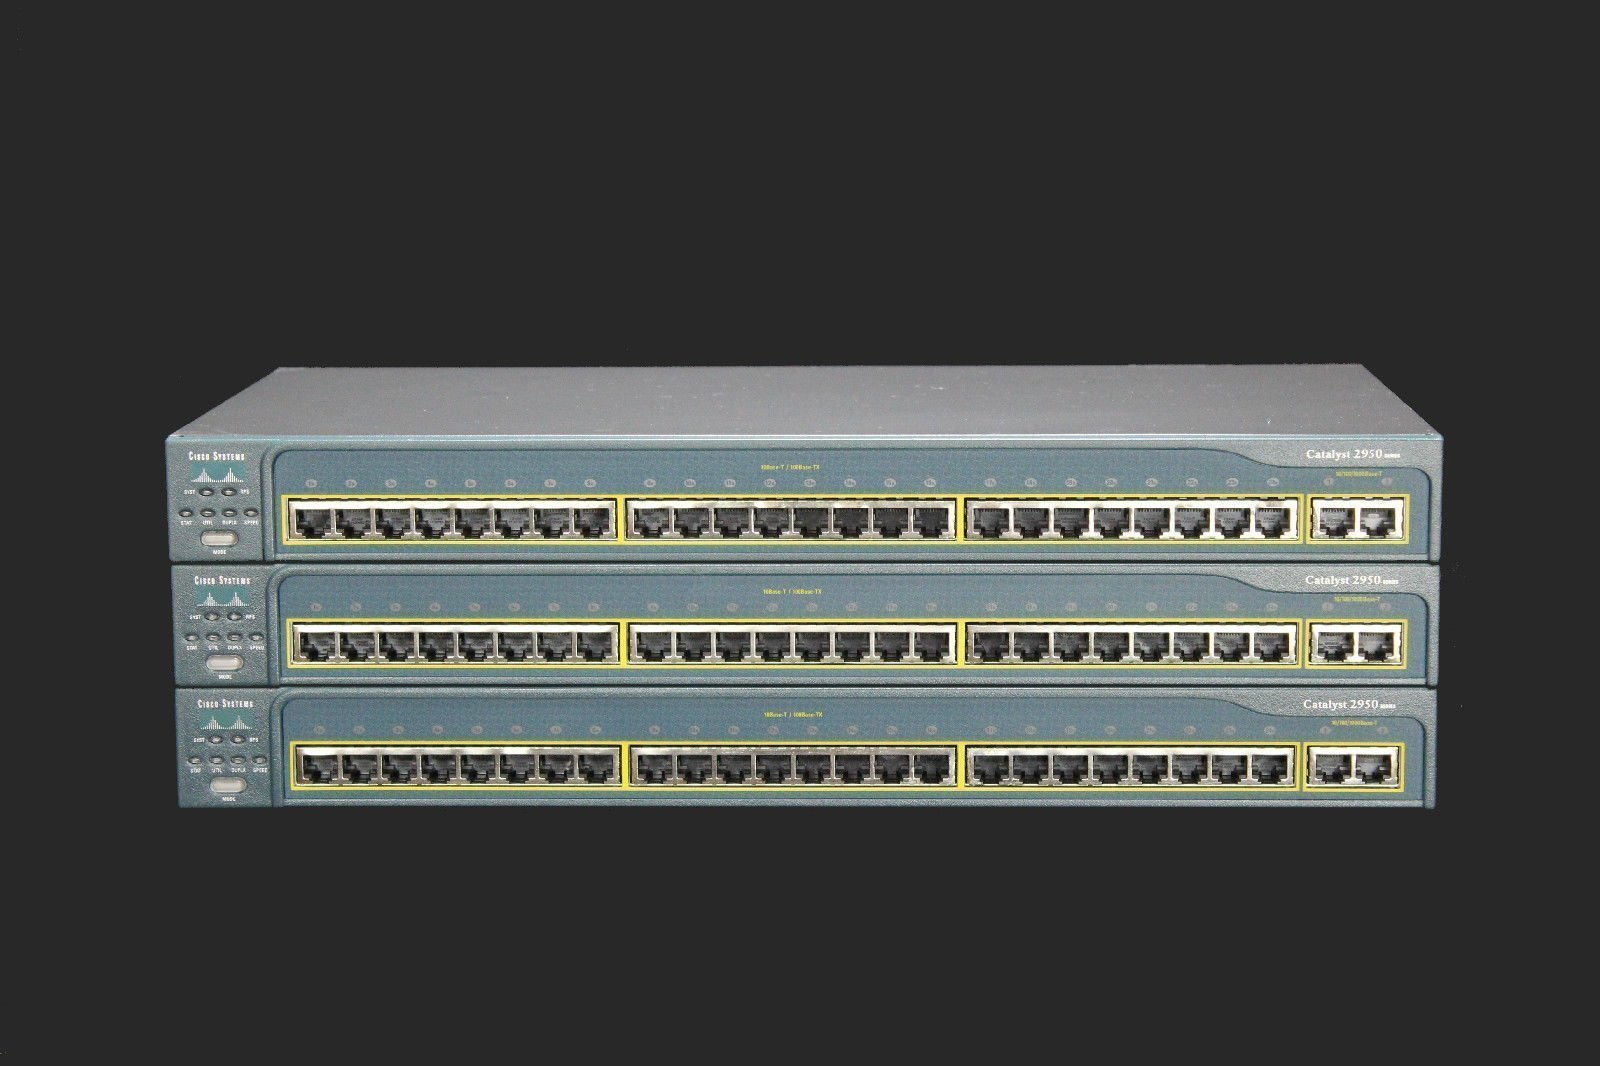 Ccna Routing Switching Standard Lab Kit Cisco Switch 3560g And Do Lan Sale